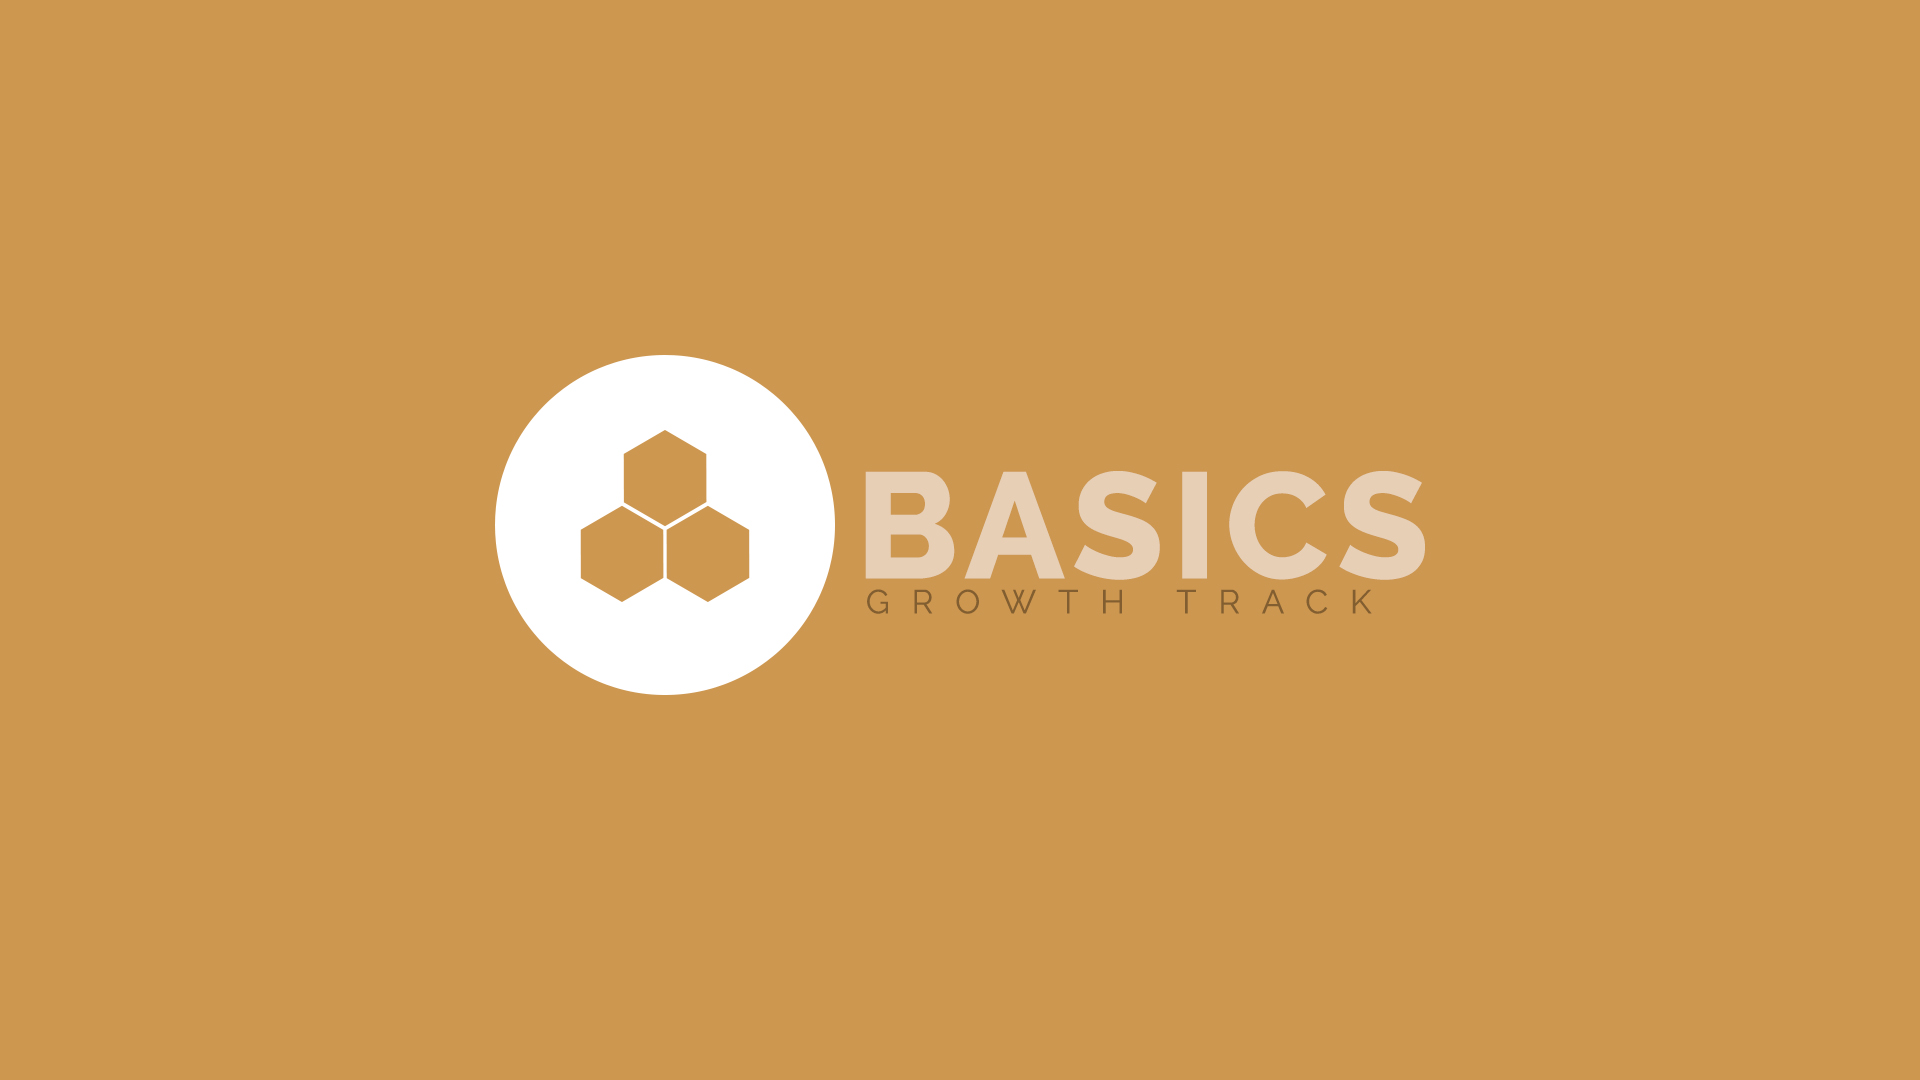 The Basics - The Basics workshop is designed to give you all the basics of our faith: the basics of salvation, an overview of the Bible, a brief Biblical history, tools for studying the Bible and ordinances (sacraments). But perhaps one of the most helpful component to The Basics workshop is the opportunity for you to ask any questions you might have concerning Christianity, the Bible, other religions, etc. You will love this four-week workshop at PDX First!Register Soon